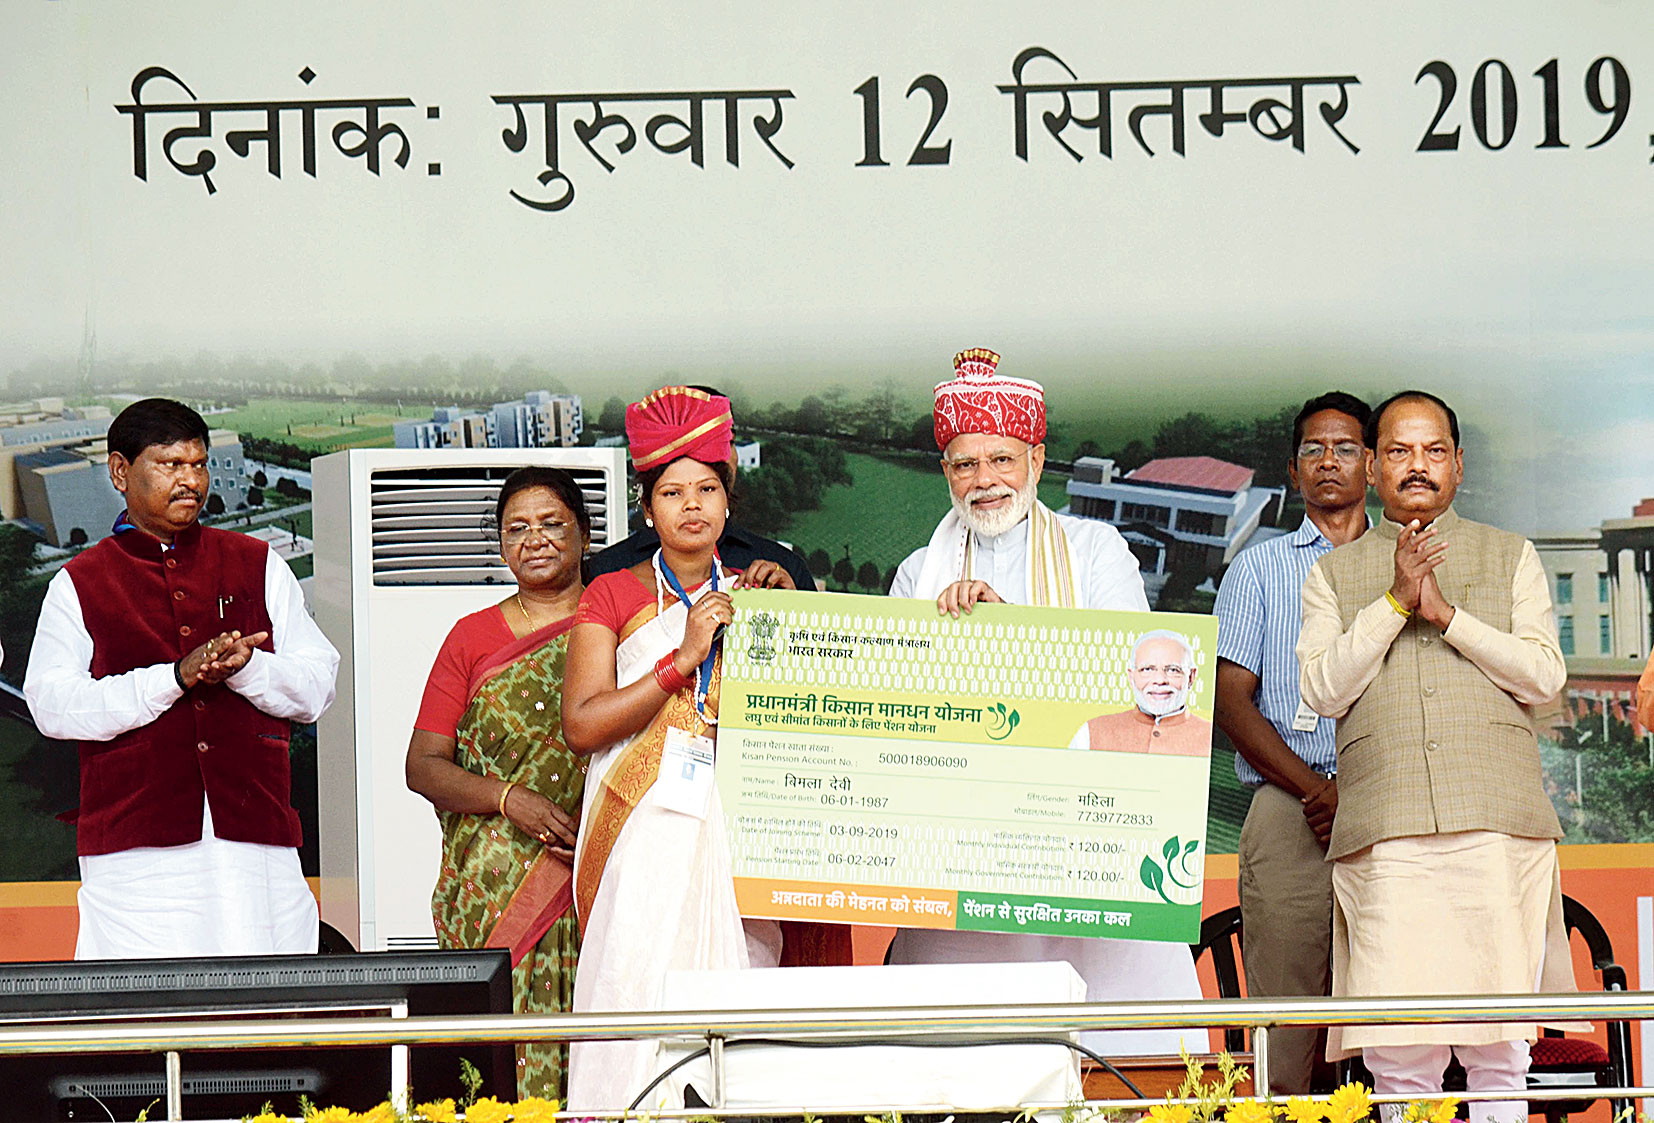 Prime Minister Narendra Modi hands over a symbolic pension card to Bimla Devi, a farmer from the state, at Prabhat Tara ground in Ranchi on Thursday as chief minister Raghubar Das and governor Droupadi Murmu applaud.